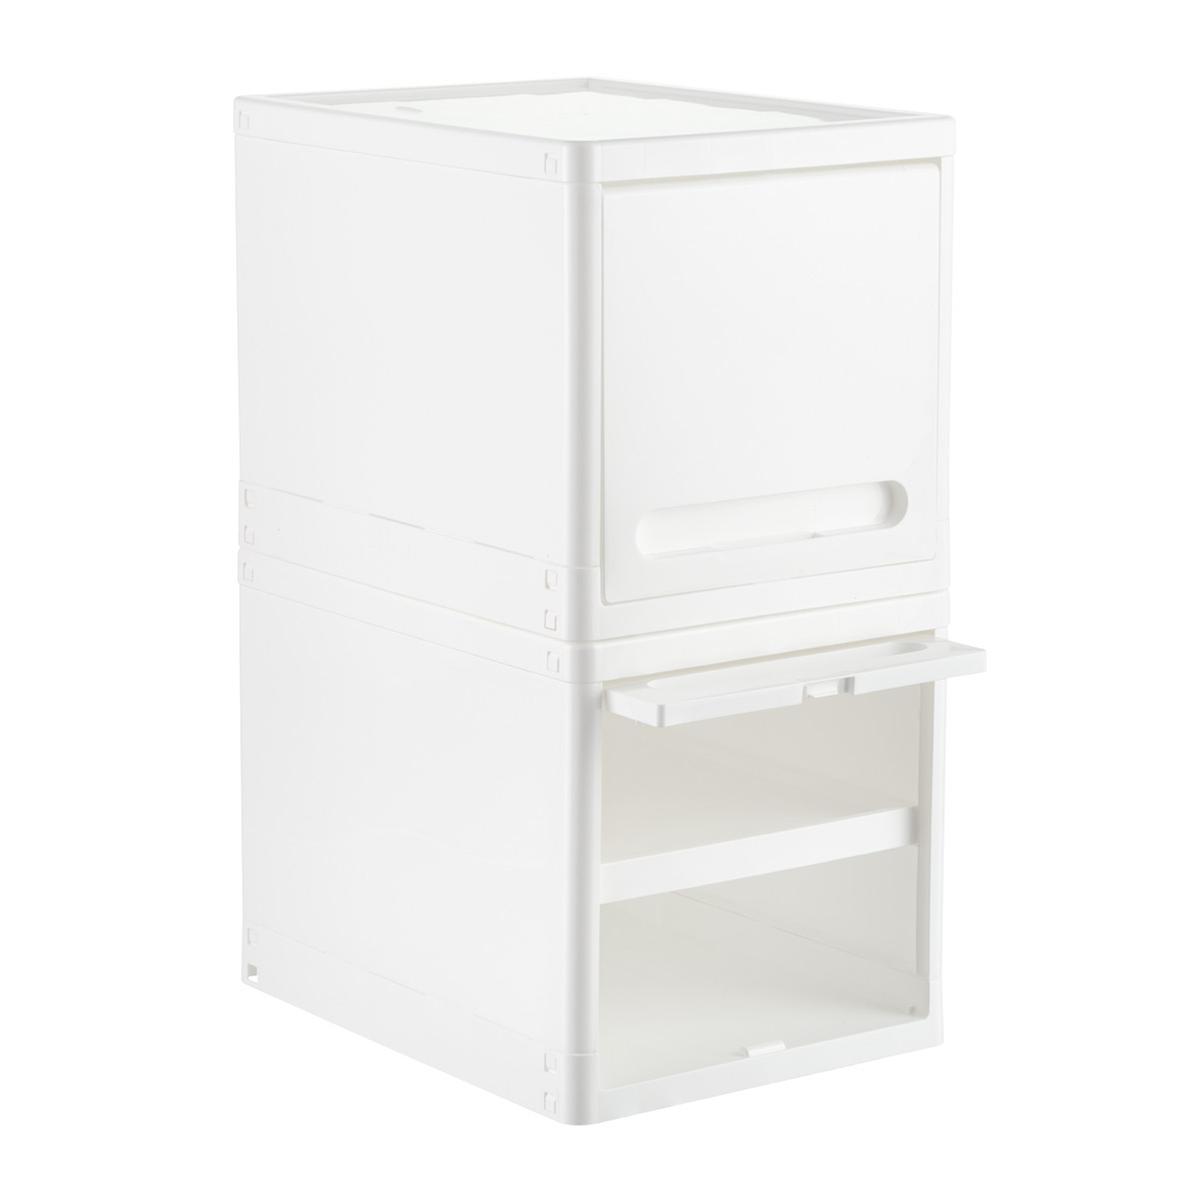 White Plastic Storage Cube with Retractable Door